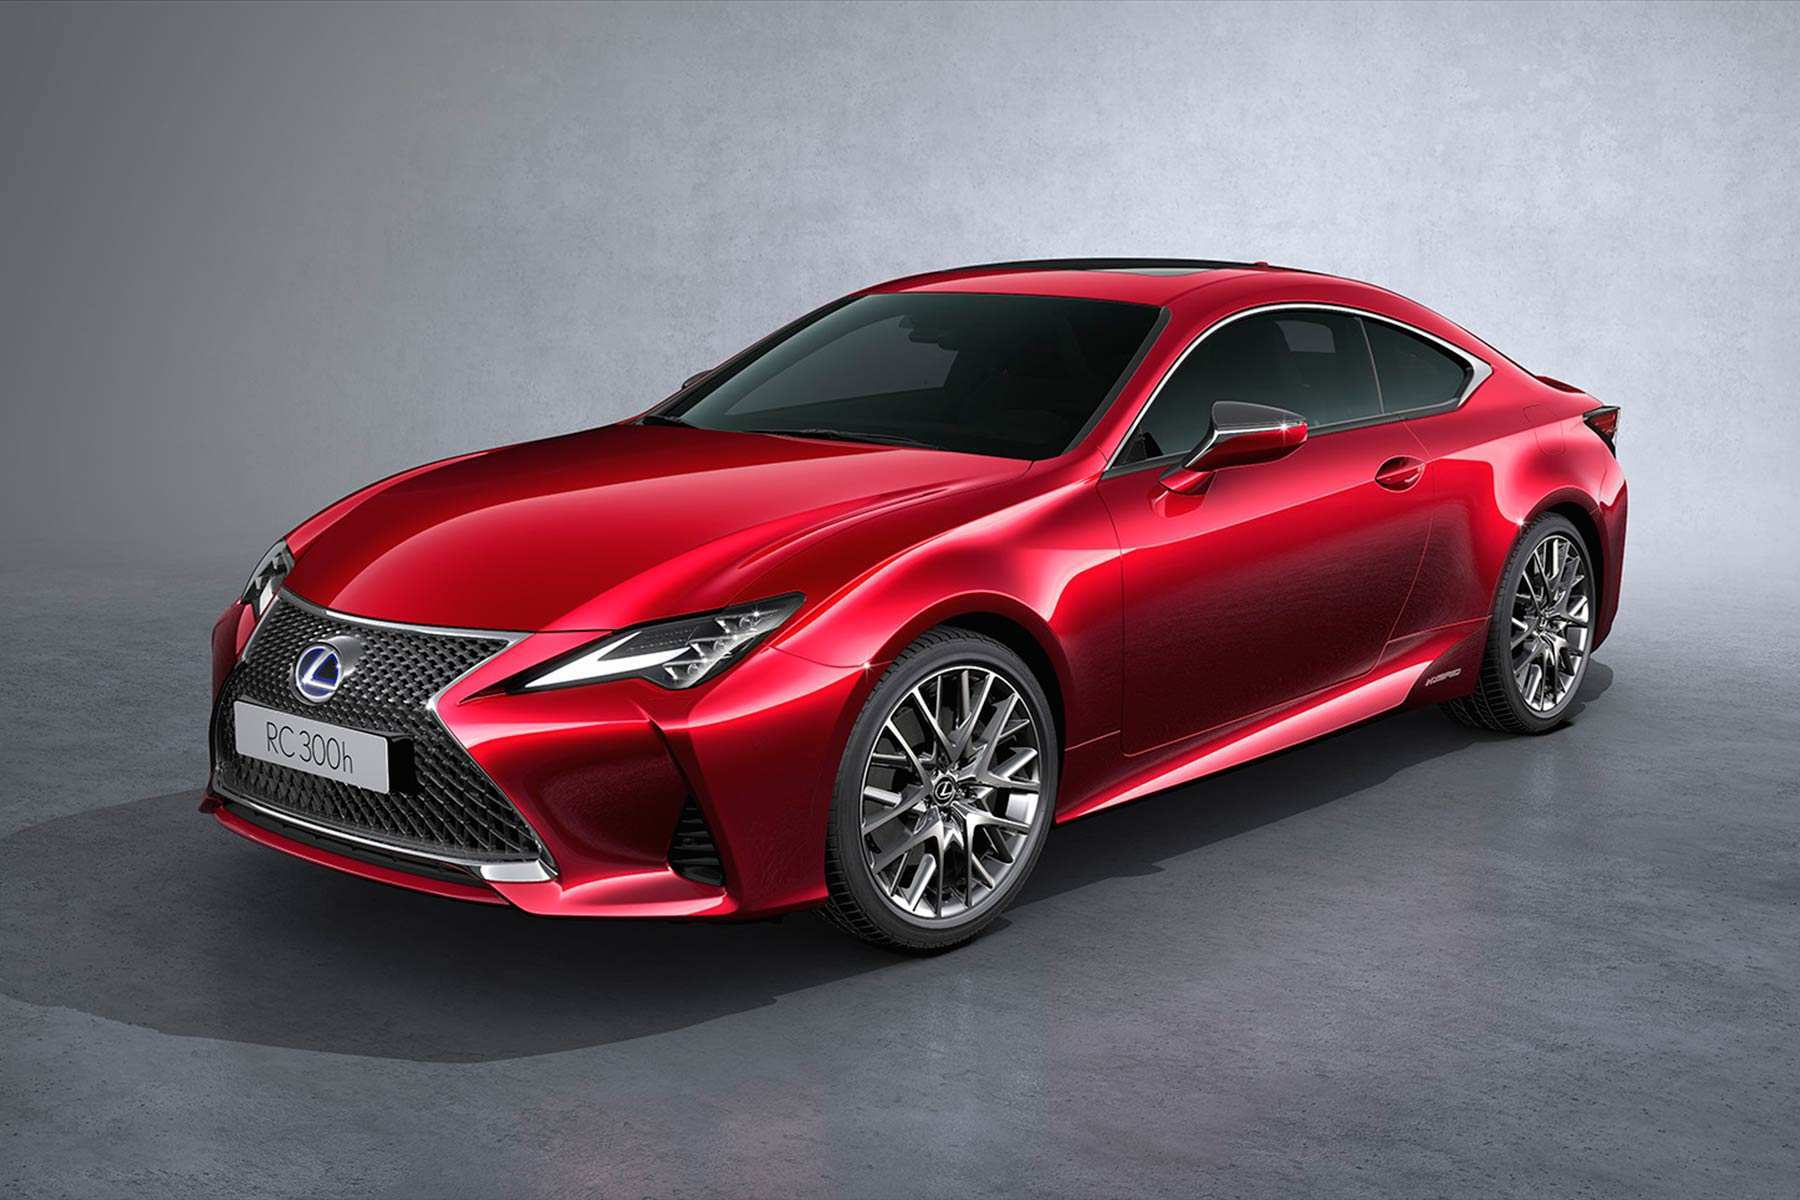 36 Concept of Lexus 2019 Coupe Engine for Lexus 2019 Coupe